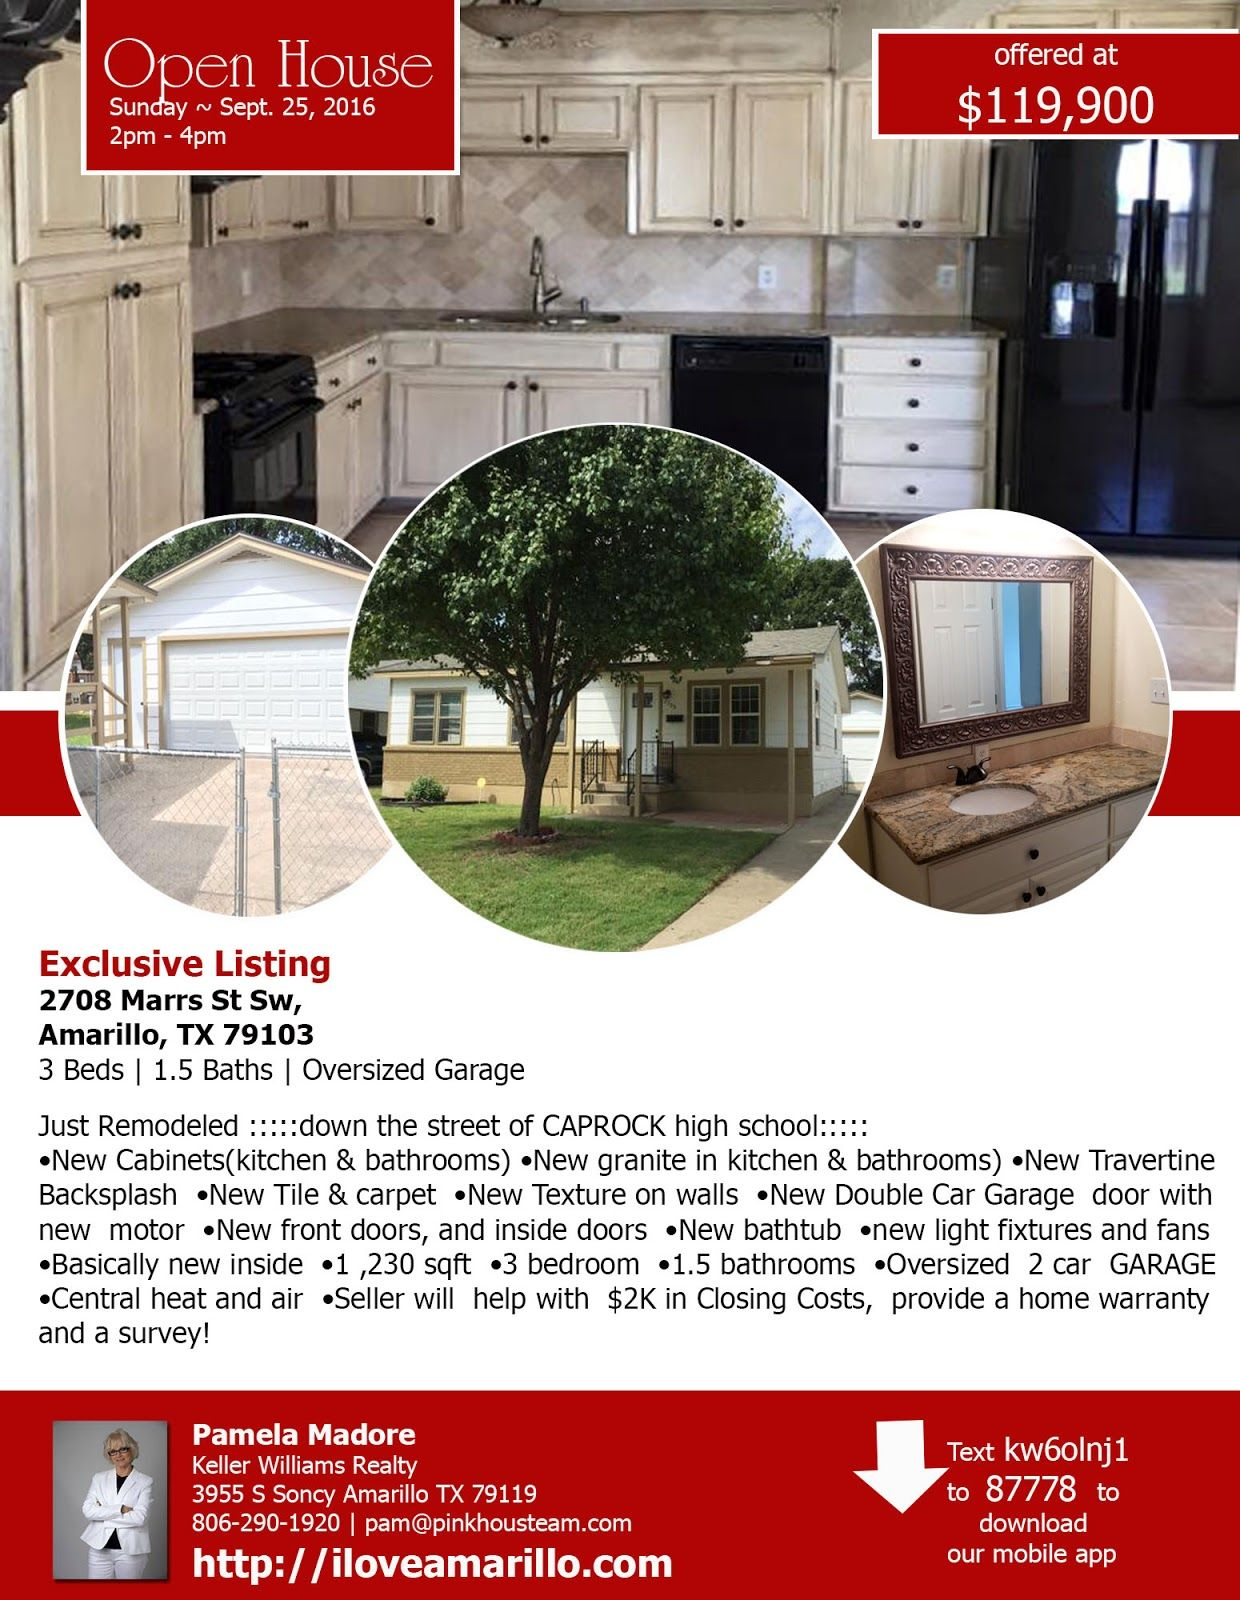 Open House for Marrs St Sw Amarillo TX nHome for Sale